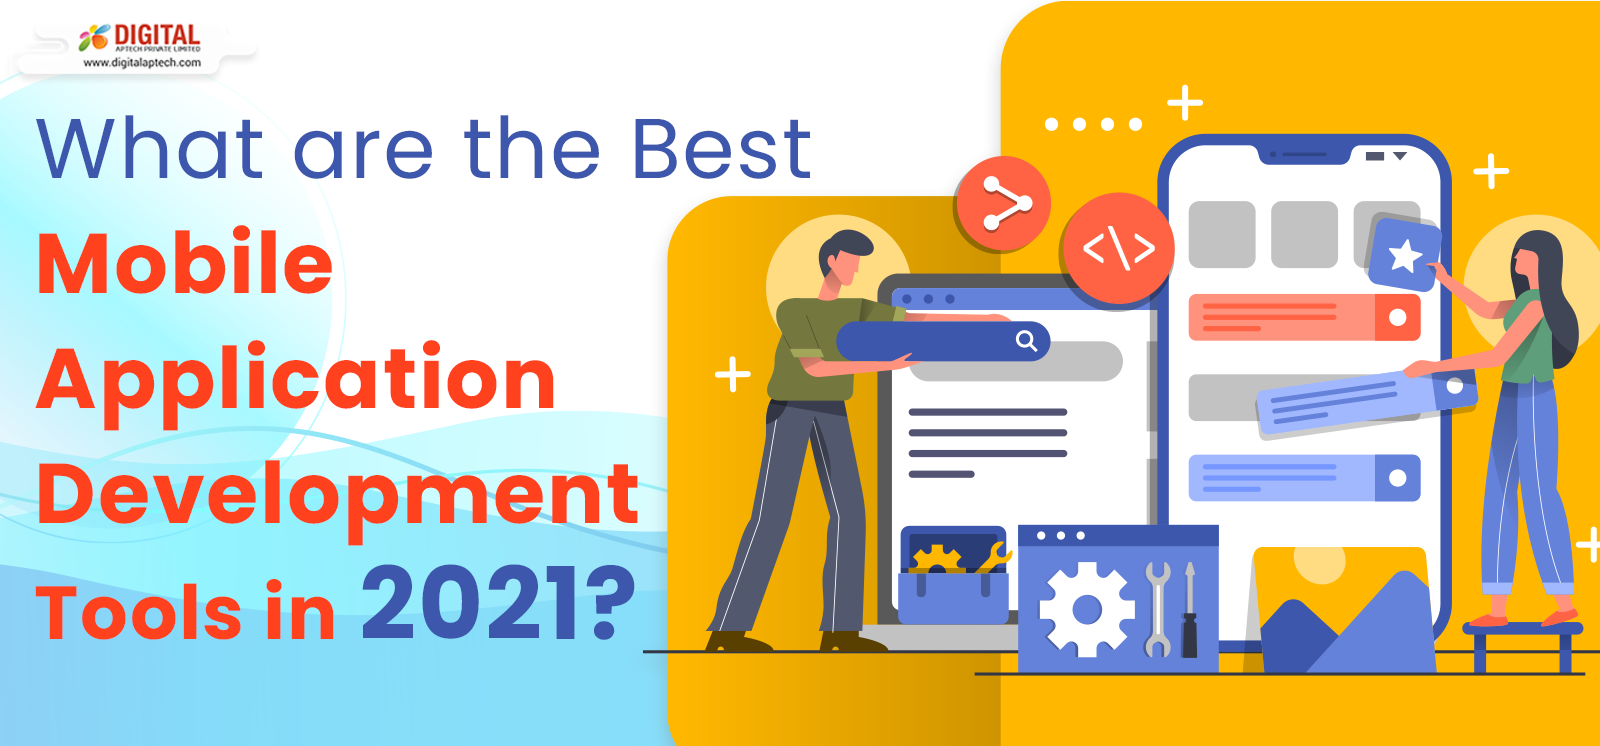 What are the Best Mobile Application Development Tools 2021?